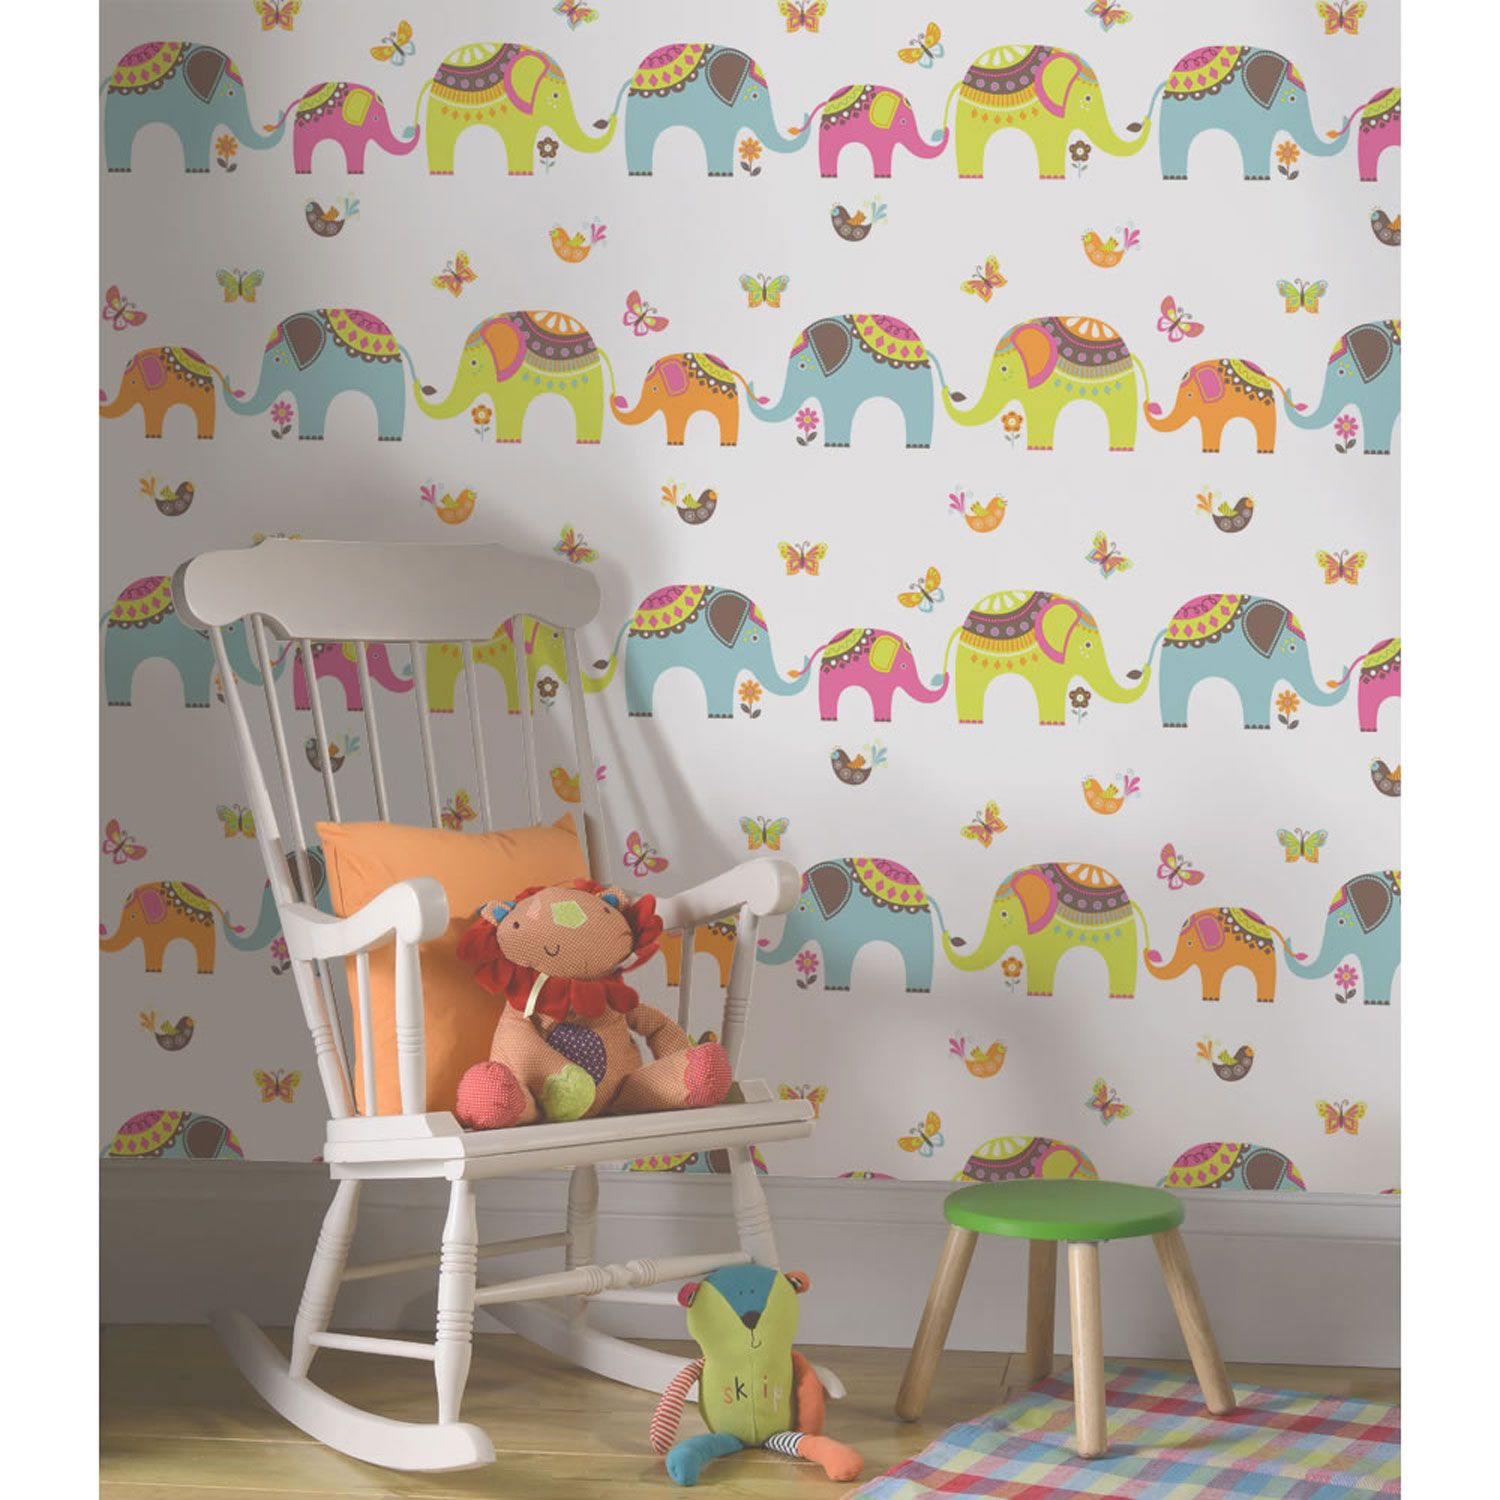 Kids bedroom nursery wallpaper holden decor playtime Wallpaper for childrens room